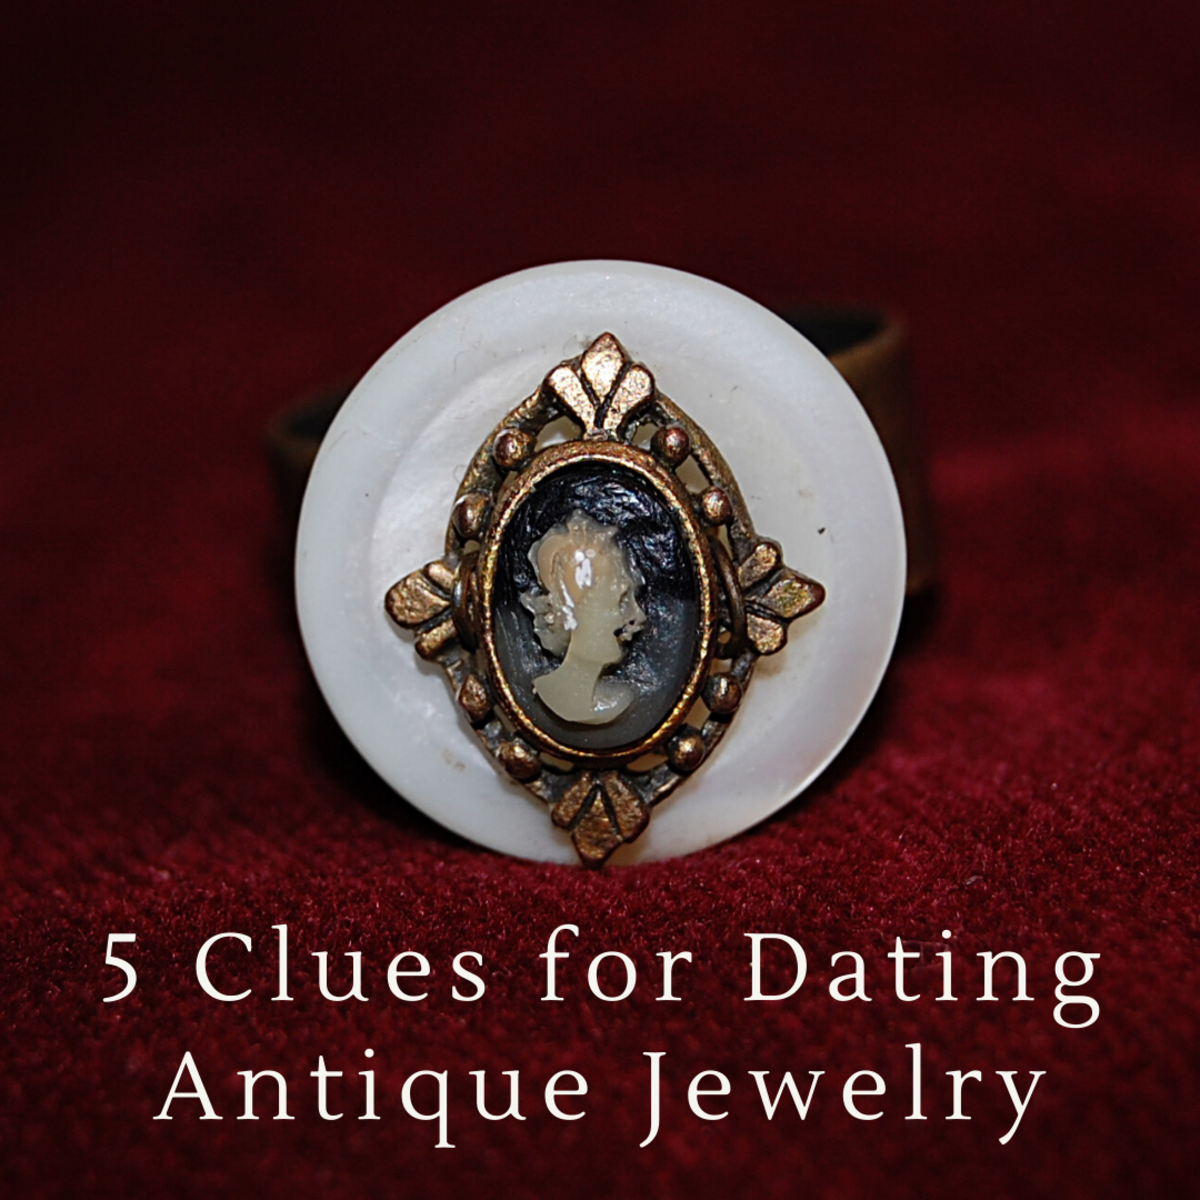 5 Easy Clues for Dating Antique or Vintage Jewelry